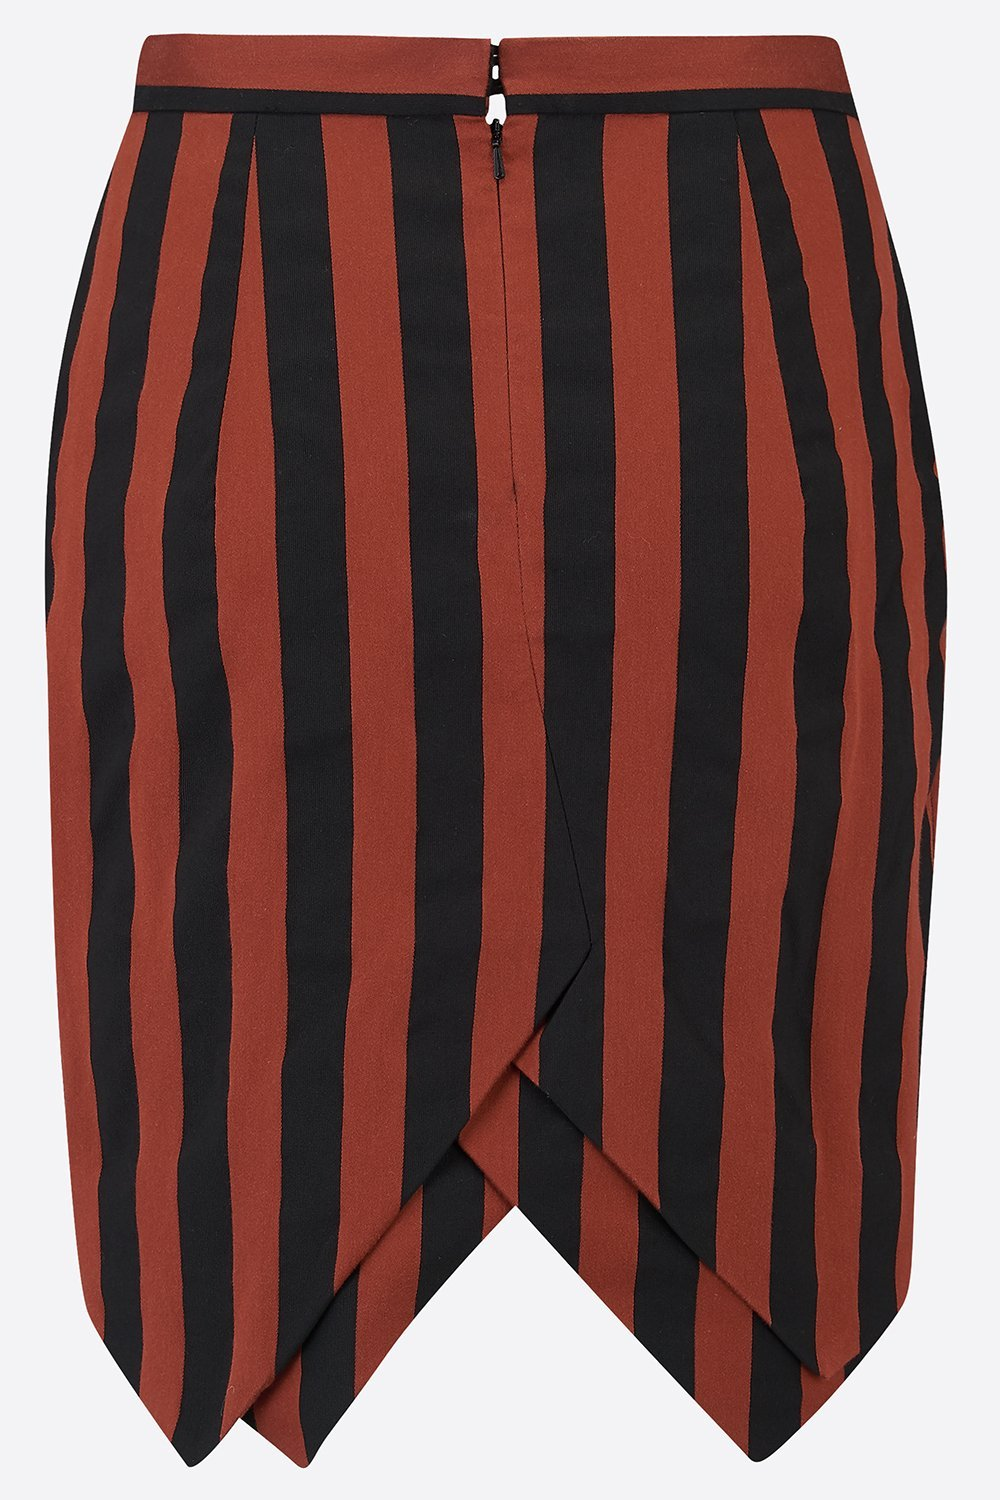 ARTEMIS SKIRT IN ORANGE STRIPE-womenswear-A Child Of The Jago